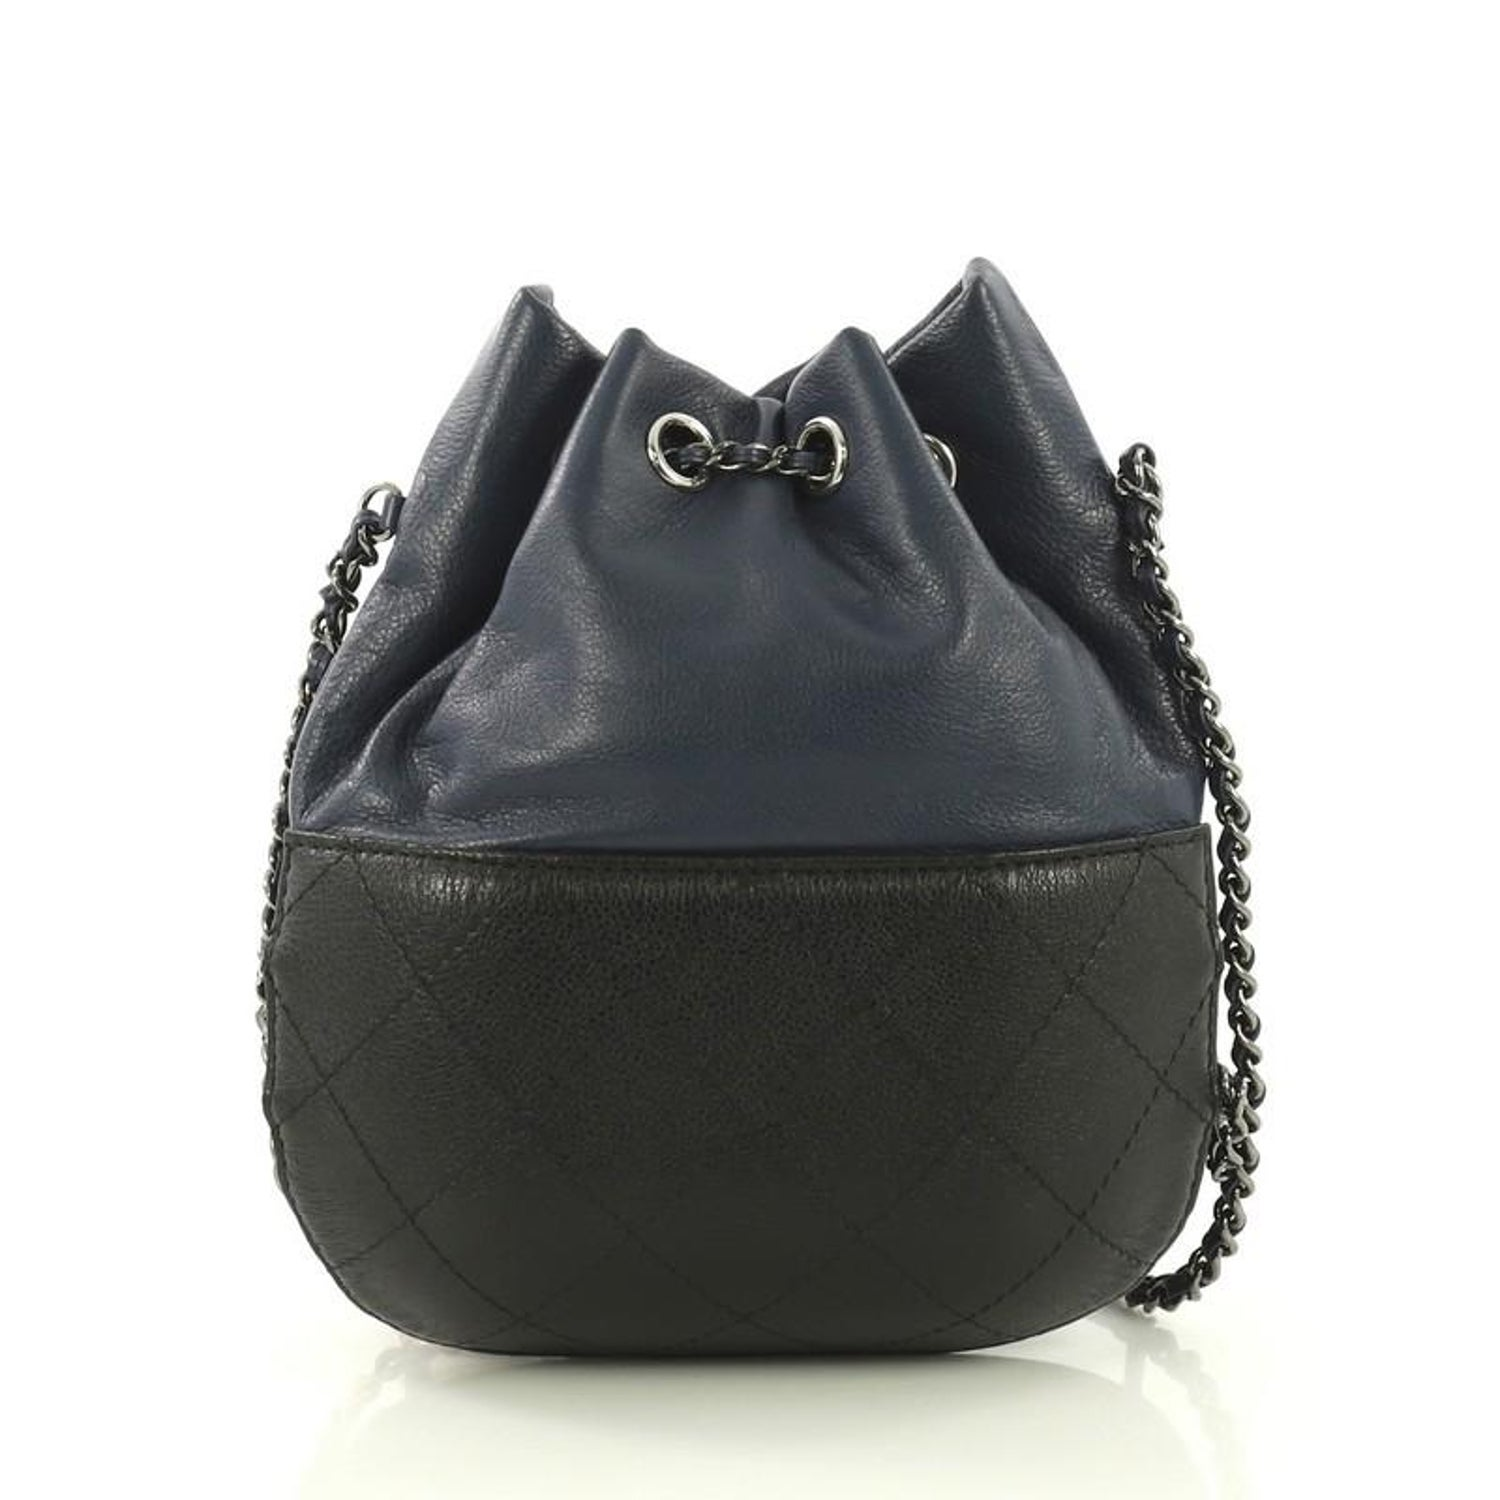 f991989e4dc4 Chanel Gabrielle Drawstring Bag Quilted Calfskin Small, For Sale at 1stdibs